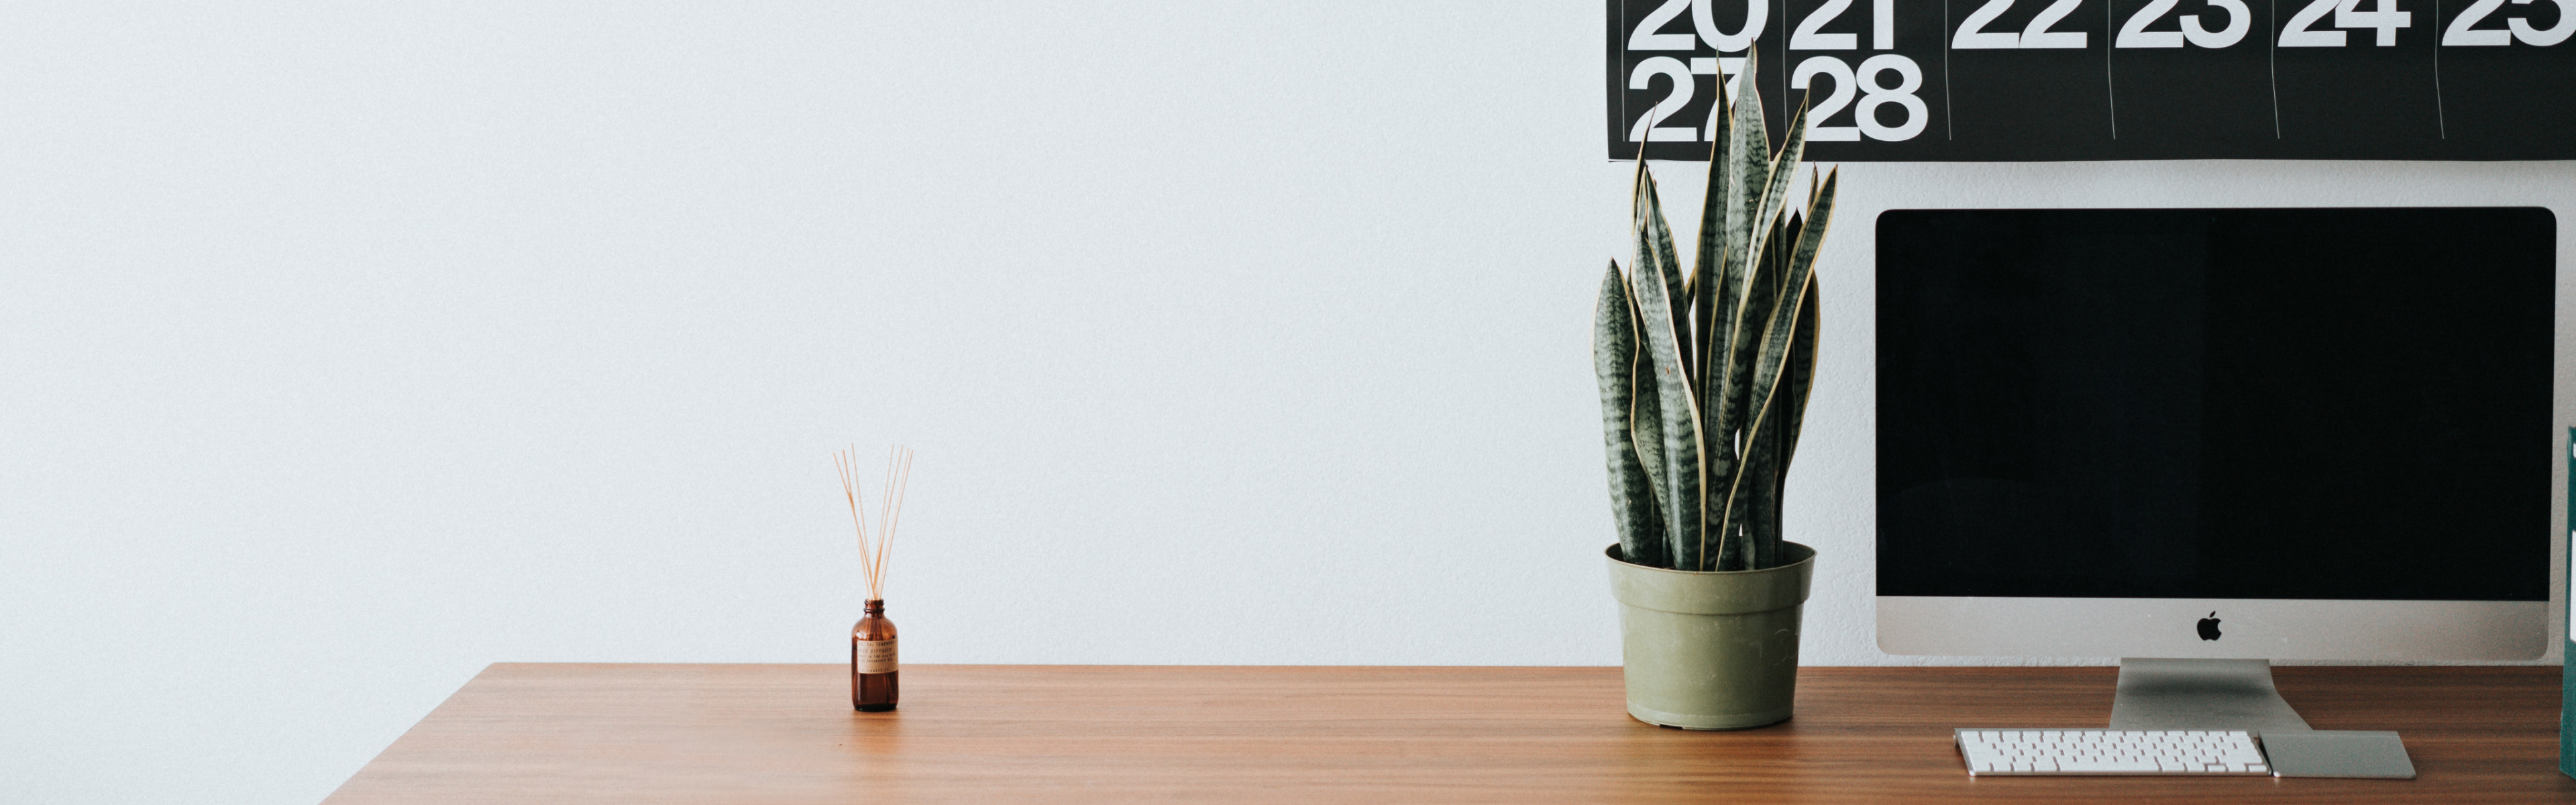 How to Create the Best Video Setup for Your Interview Braintrust Blog banner.